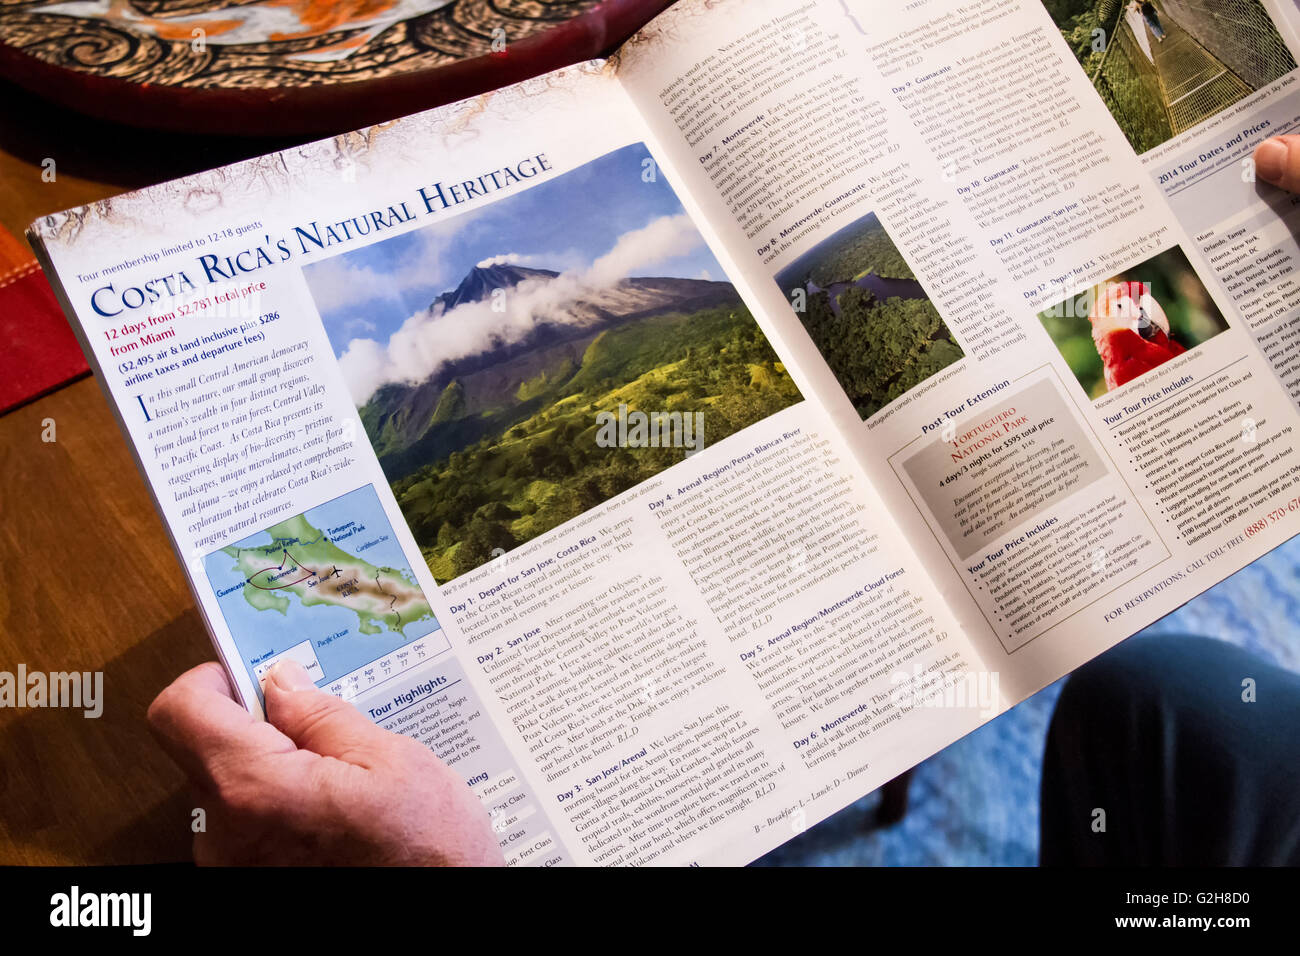 Man looking at travel brochure for Costa Rica, dreaming of a vacation there - Stock Image